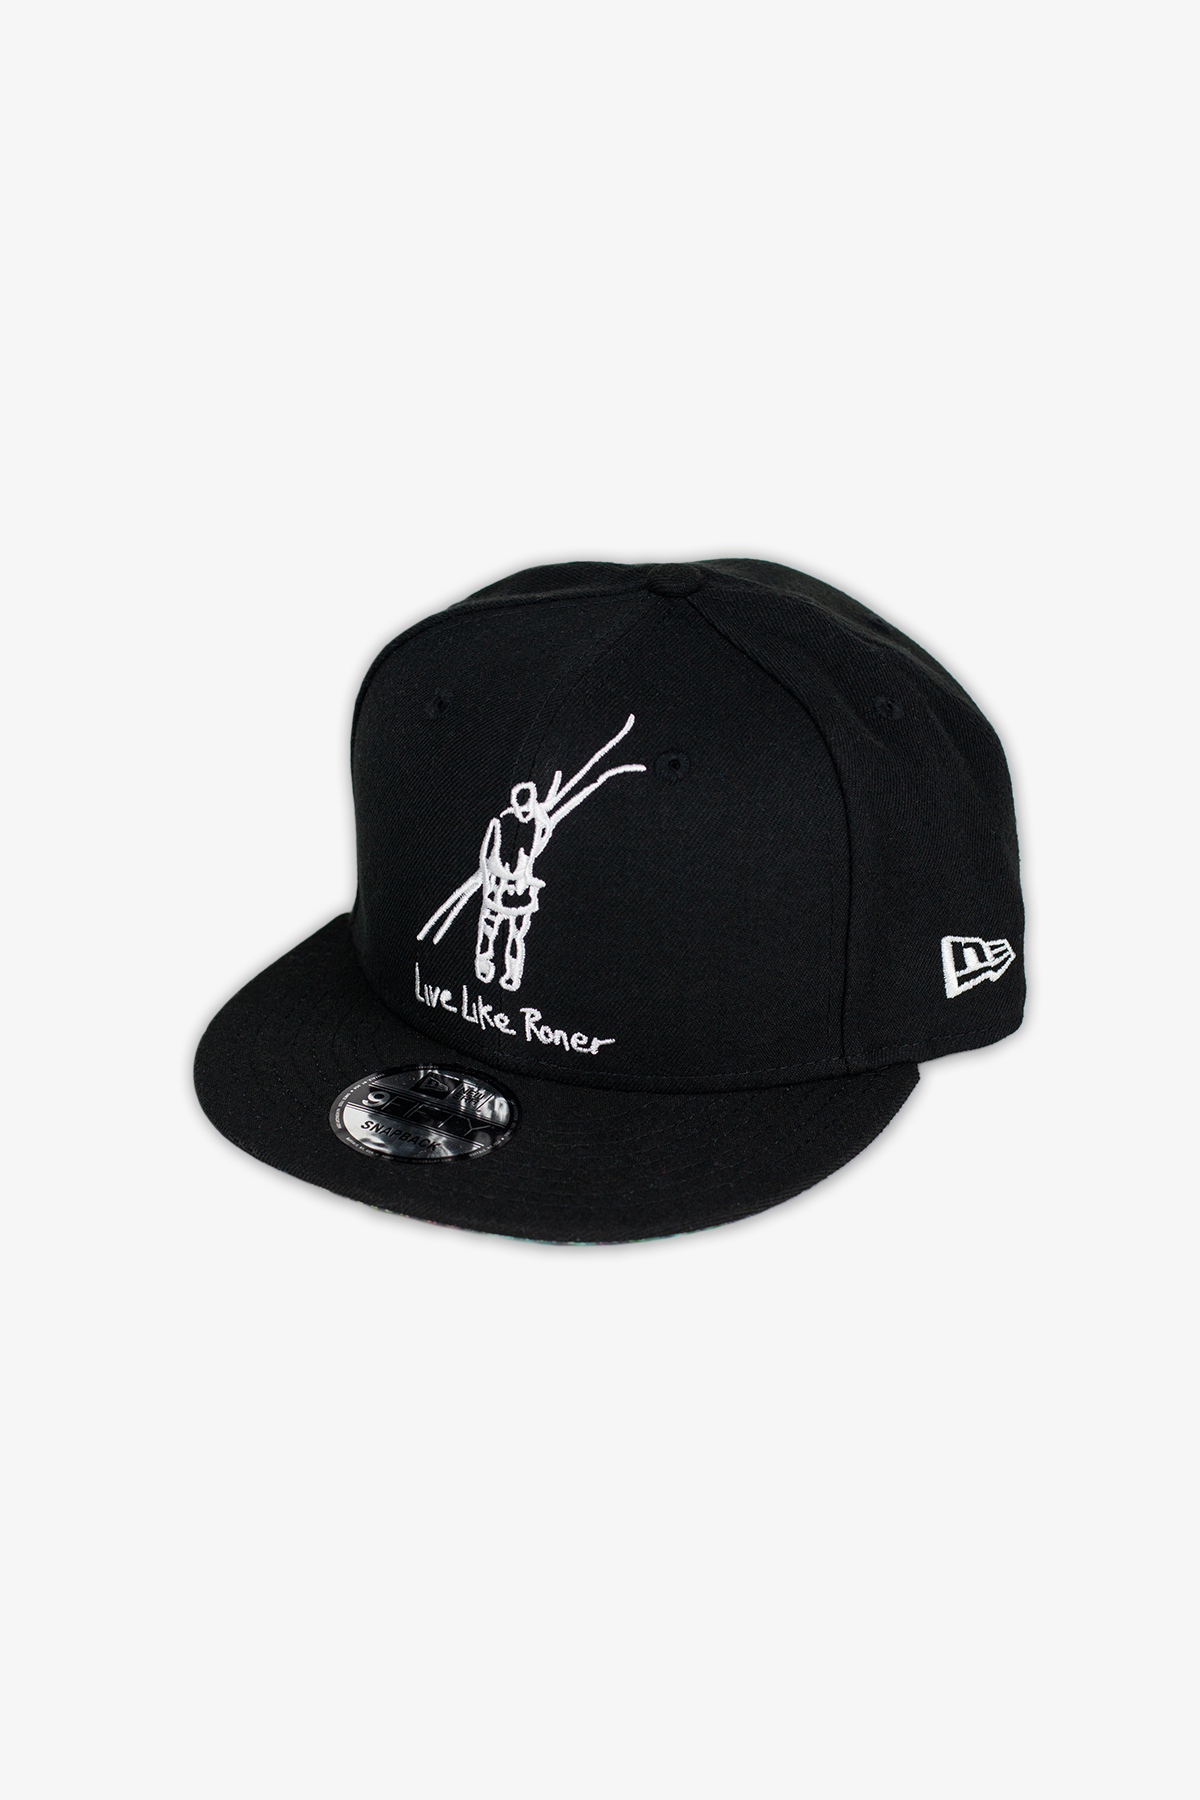 6e937f4629 Live Like Roner Official Hat - Nitro Circus